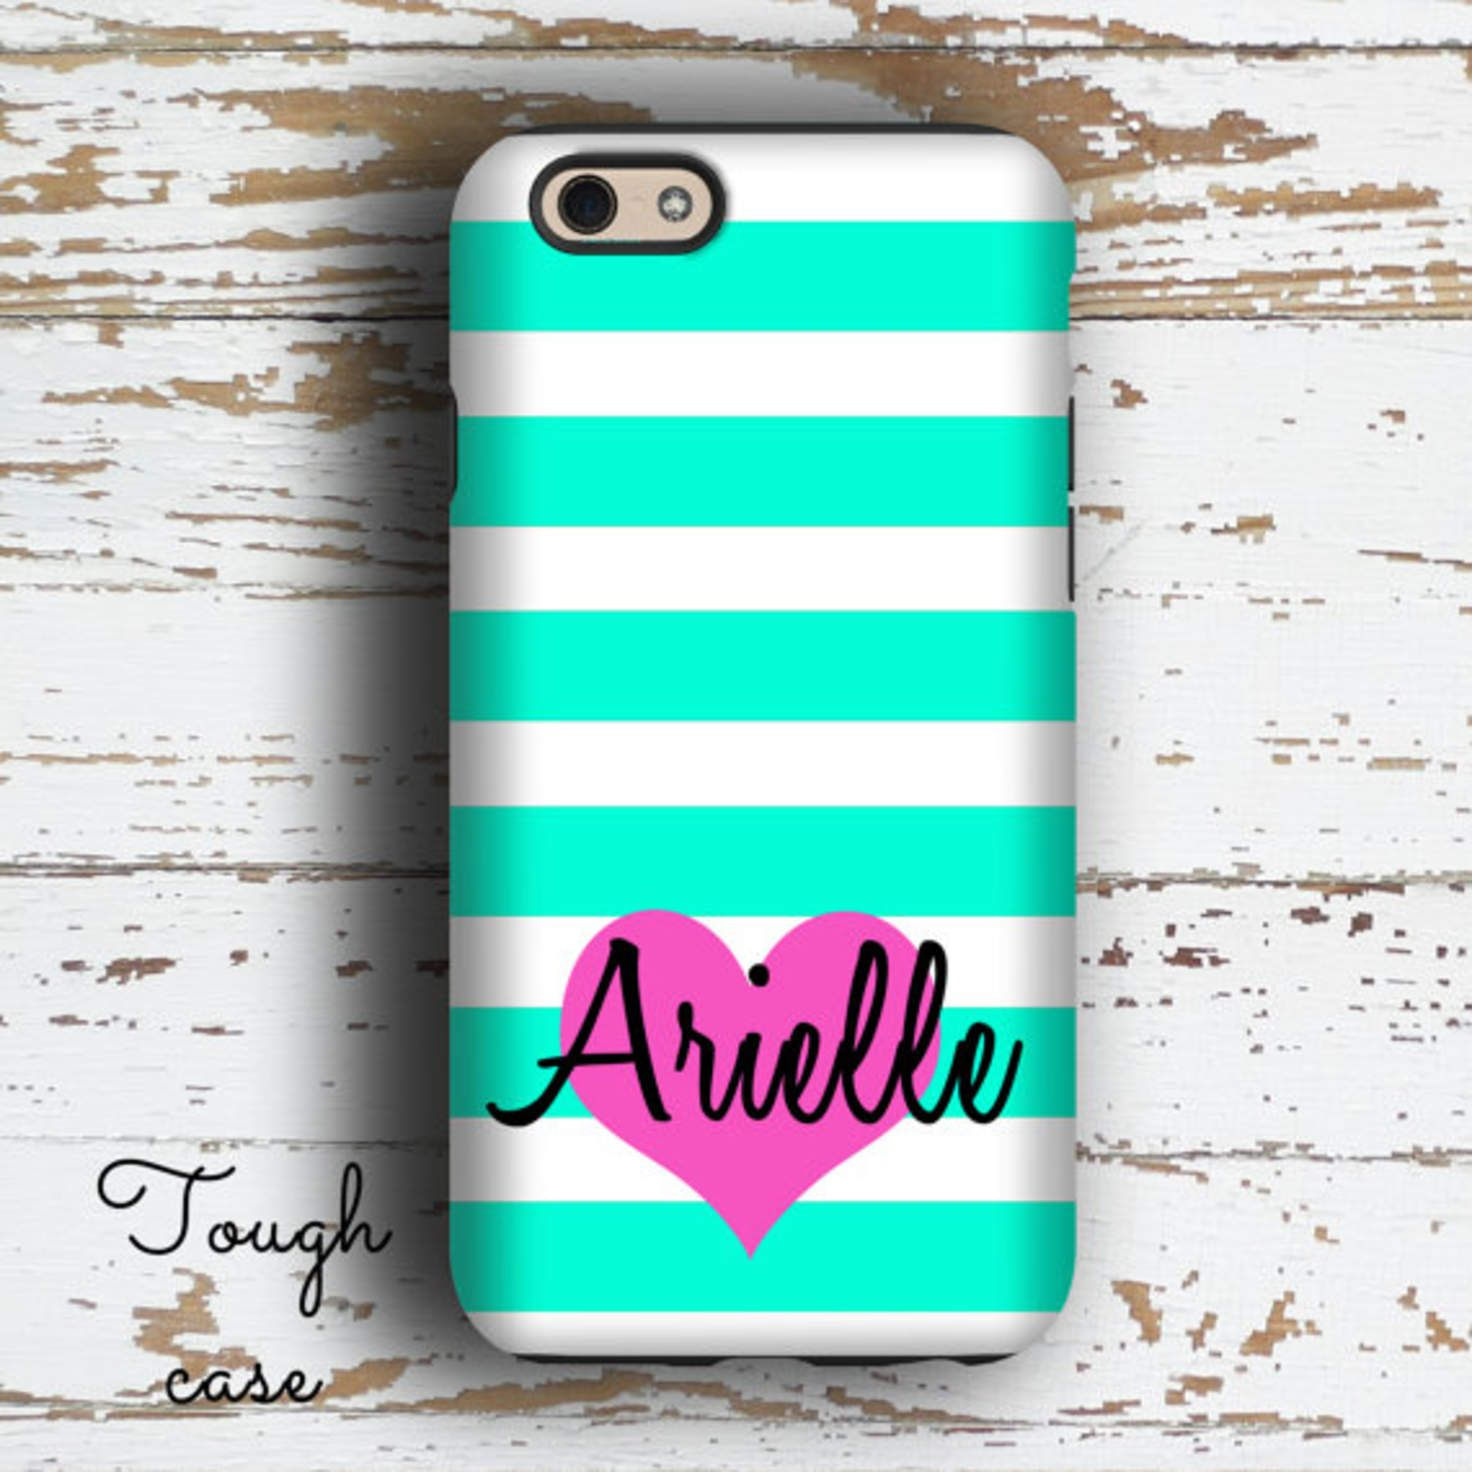 Monogram gift for teenaged daughters, Heart Iphone 6 case, Turquoise iPhone 5c case, Pink iPhone 5 case, Girly Iphone 4 case for her (1414P)